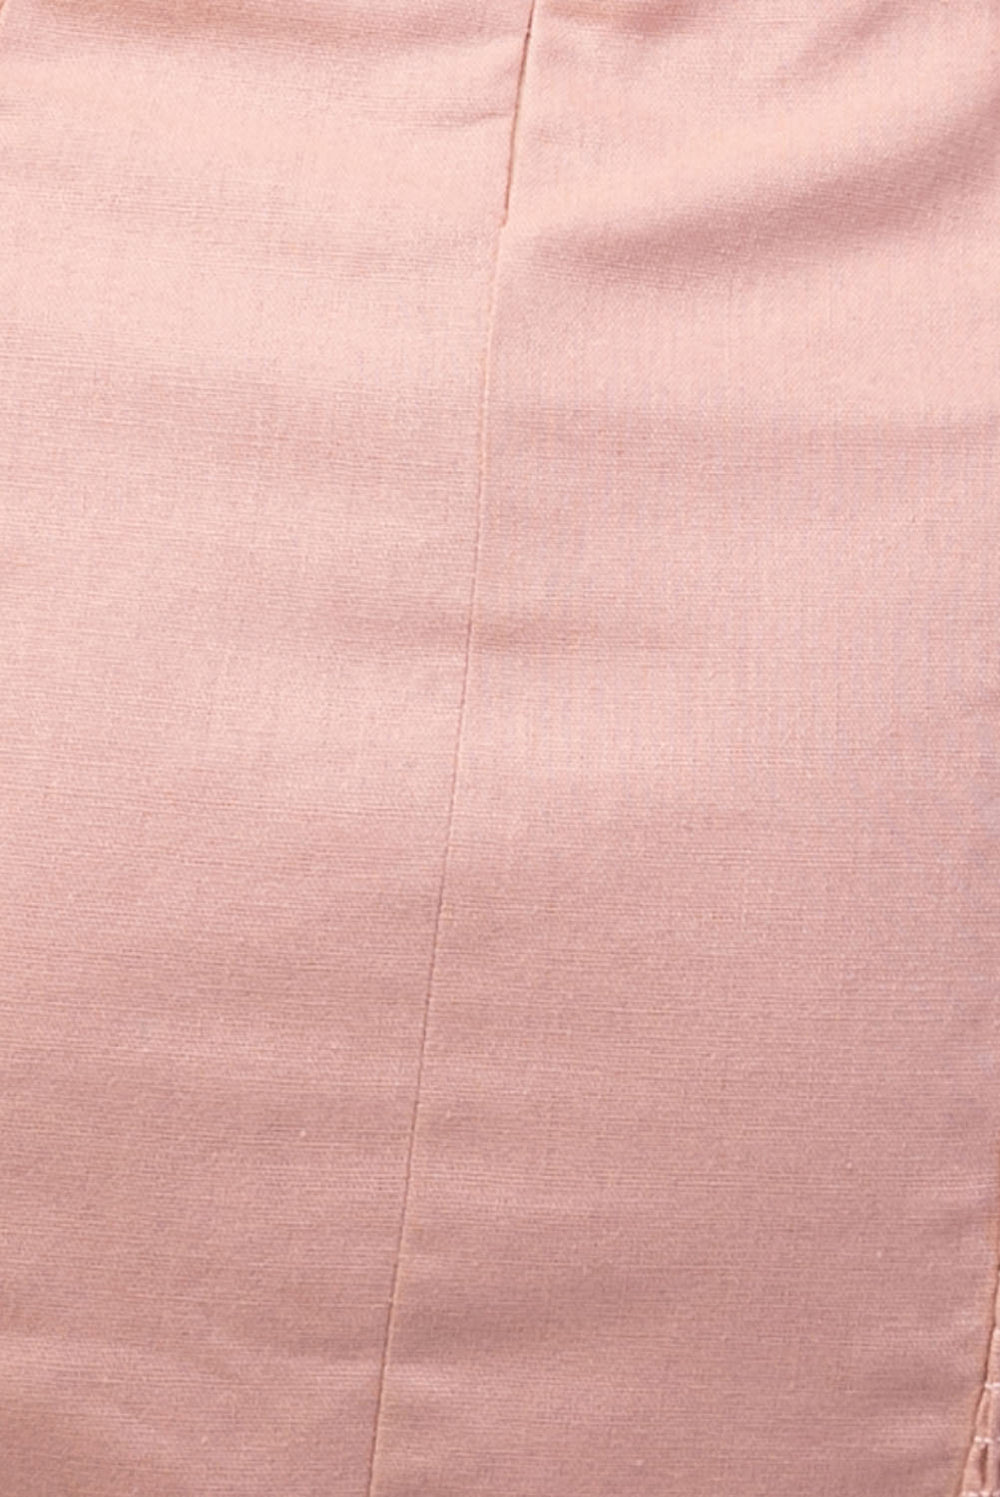 Natalia Mini Dress Side Smocking Detail In Pink Siin Bees